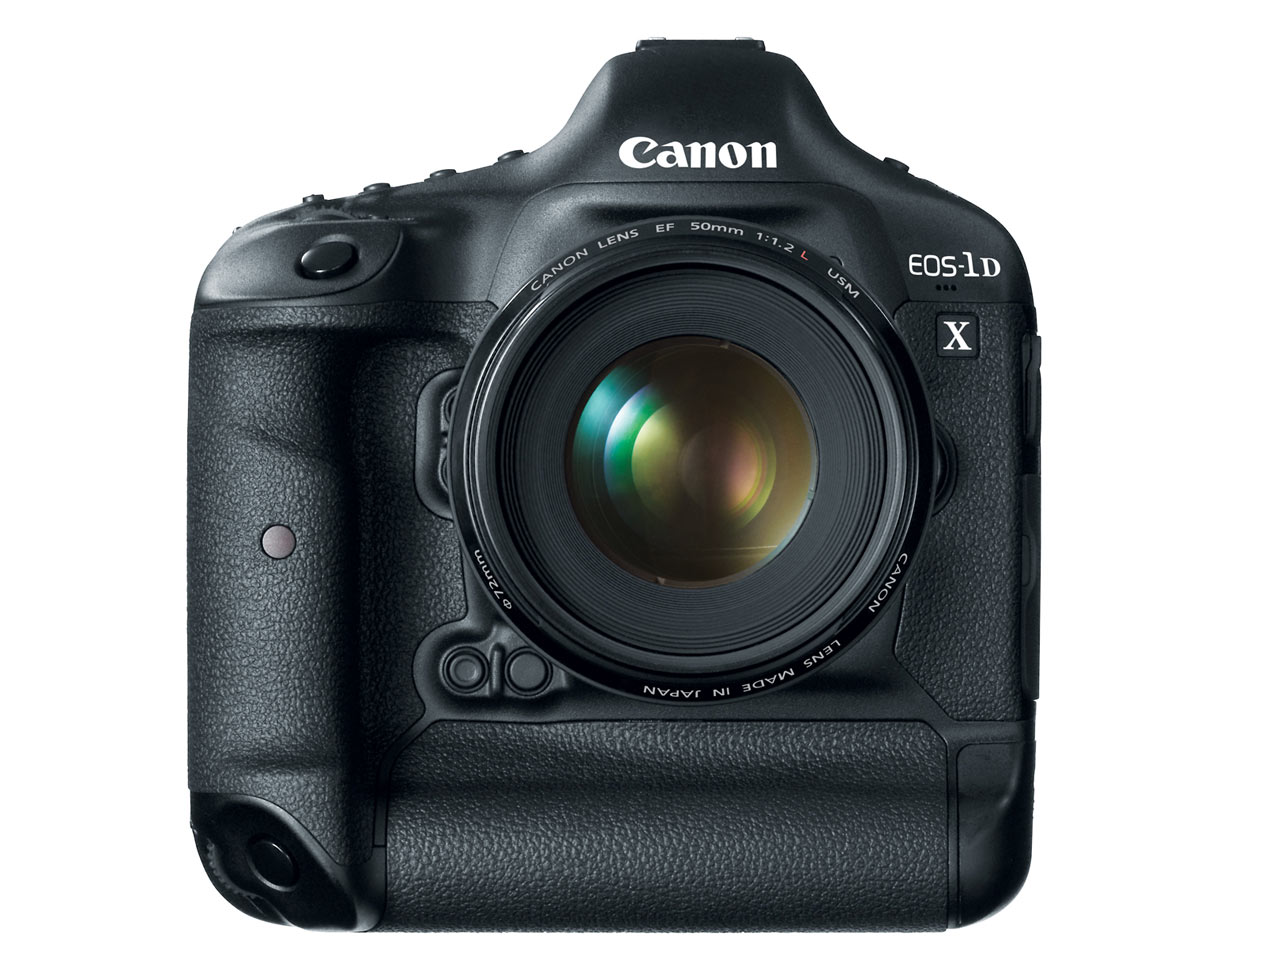 Canon EOS 1DX field review by Ari Hazeghi